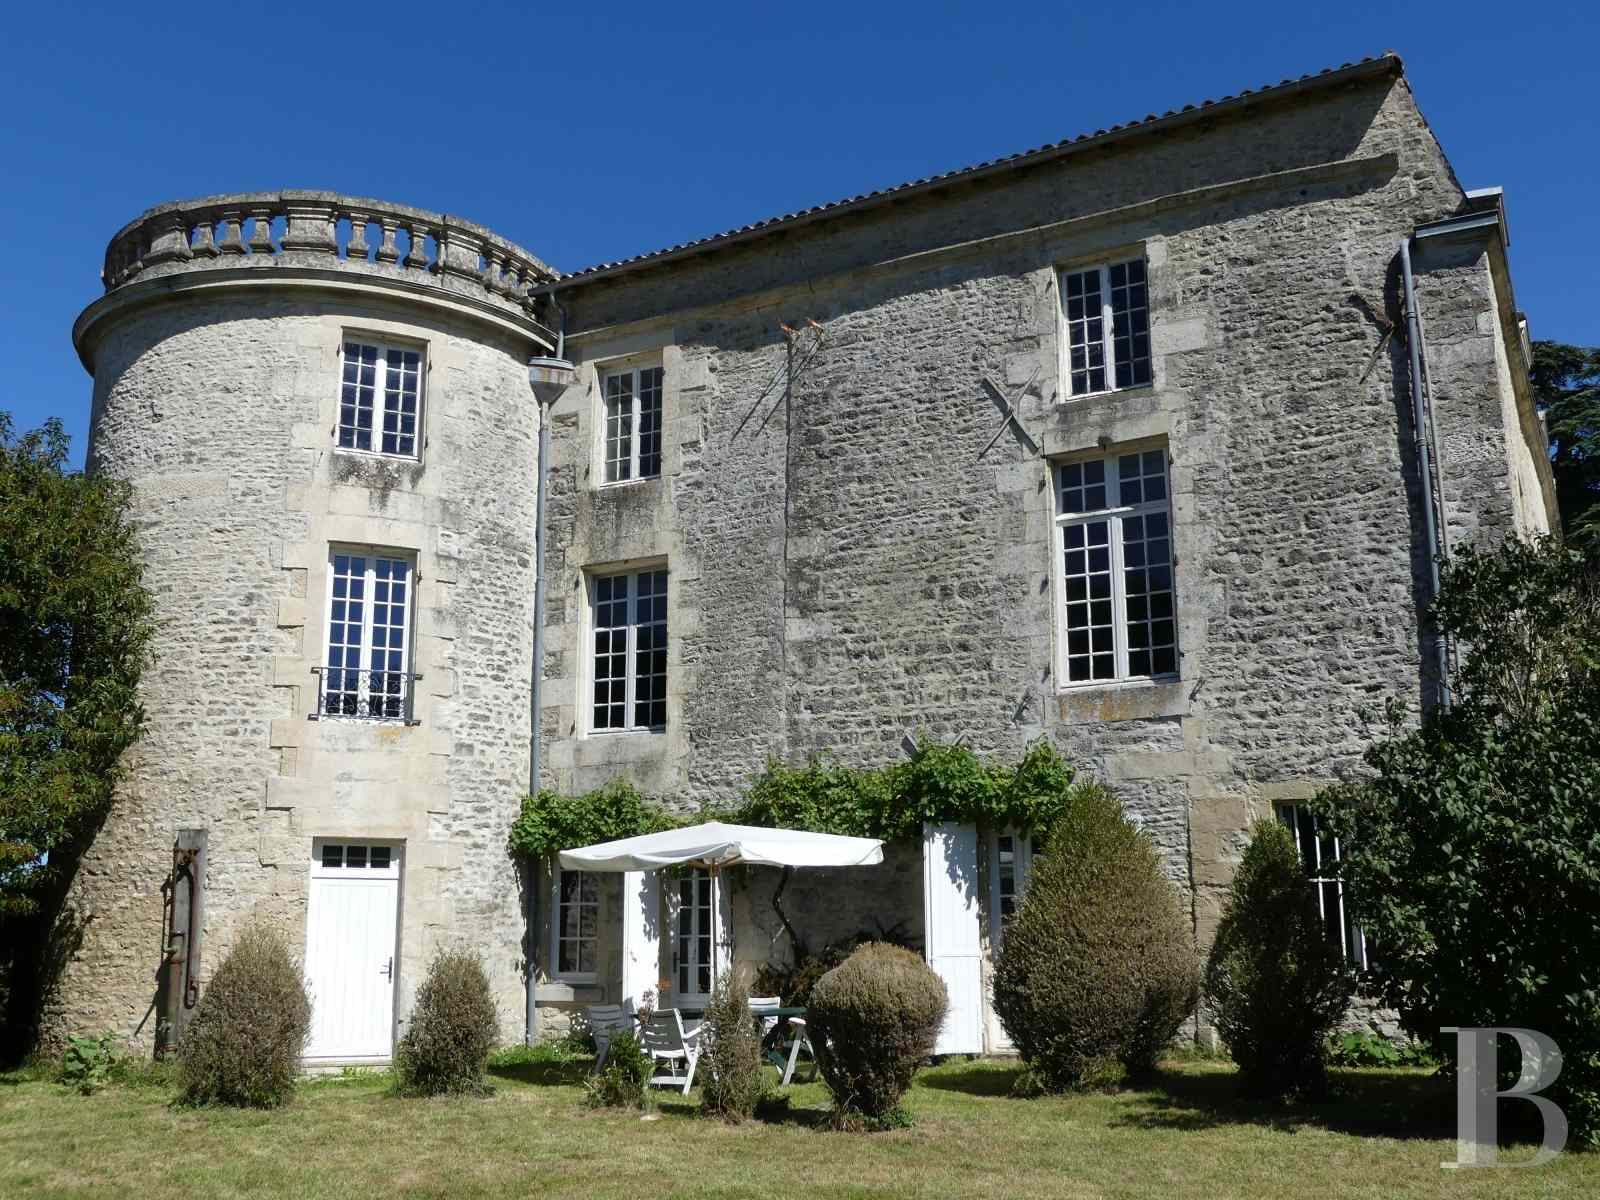 France mansions for sale poitou charentes 18th century - 1 zoom